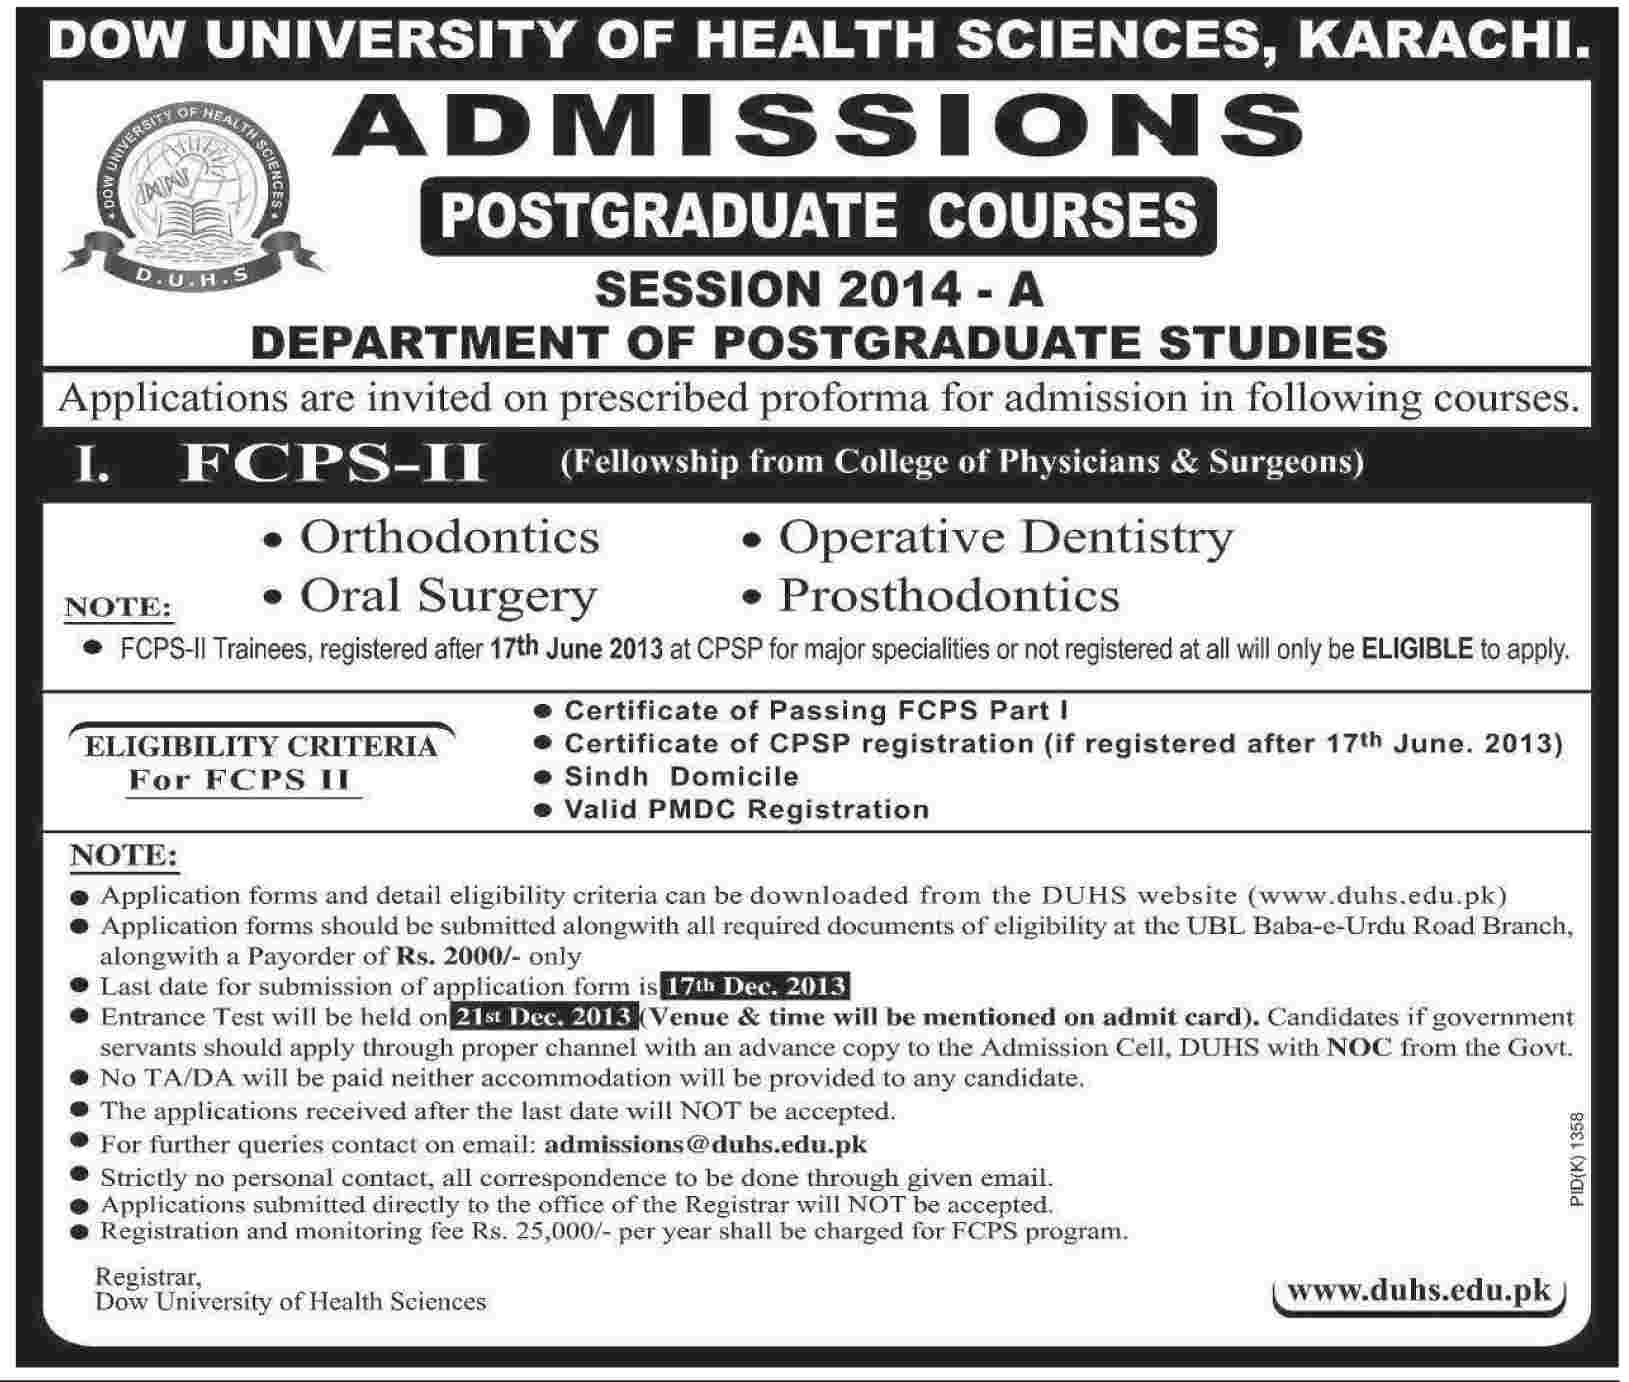 Dow University of Health Sciences (DUHS) Karachi Admission Notice 2013